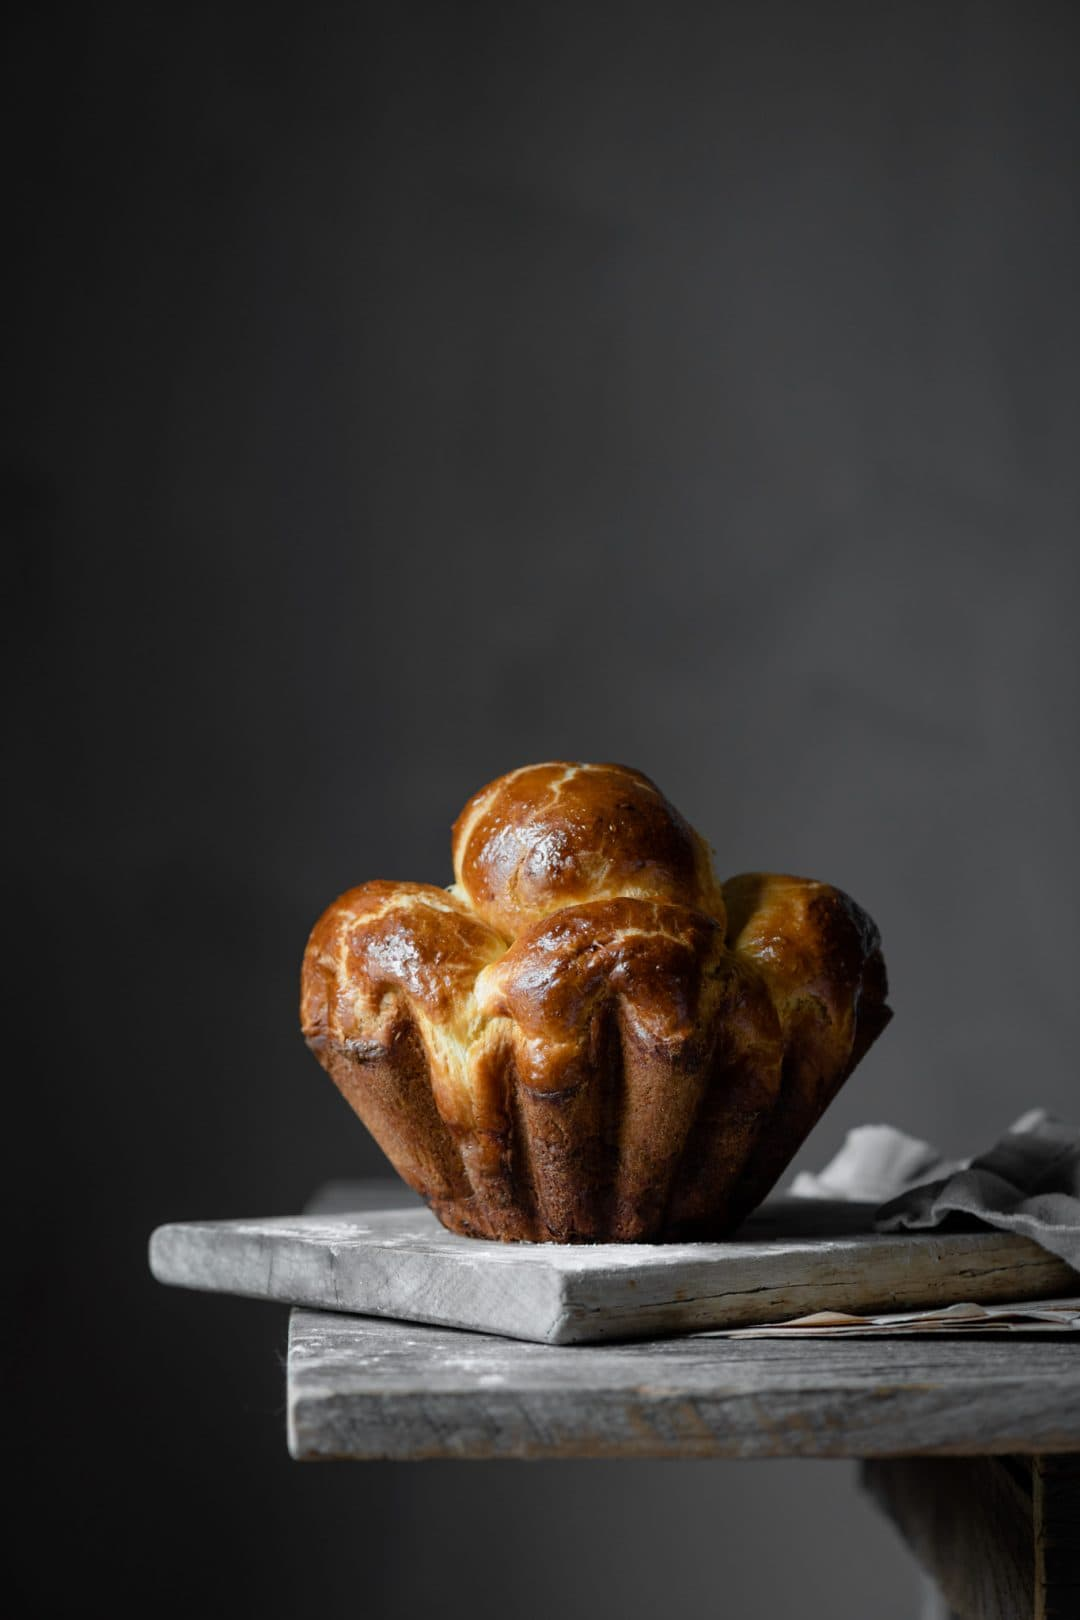 Brioche bread loaf on wooden table.